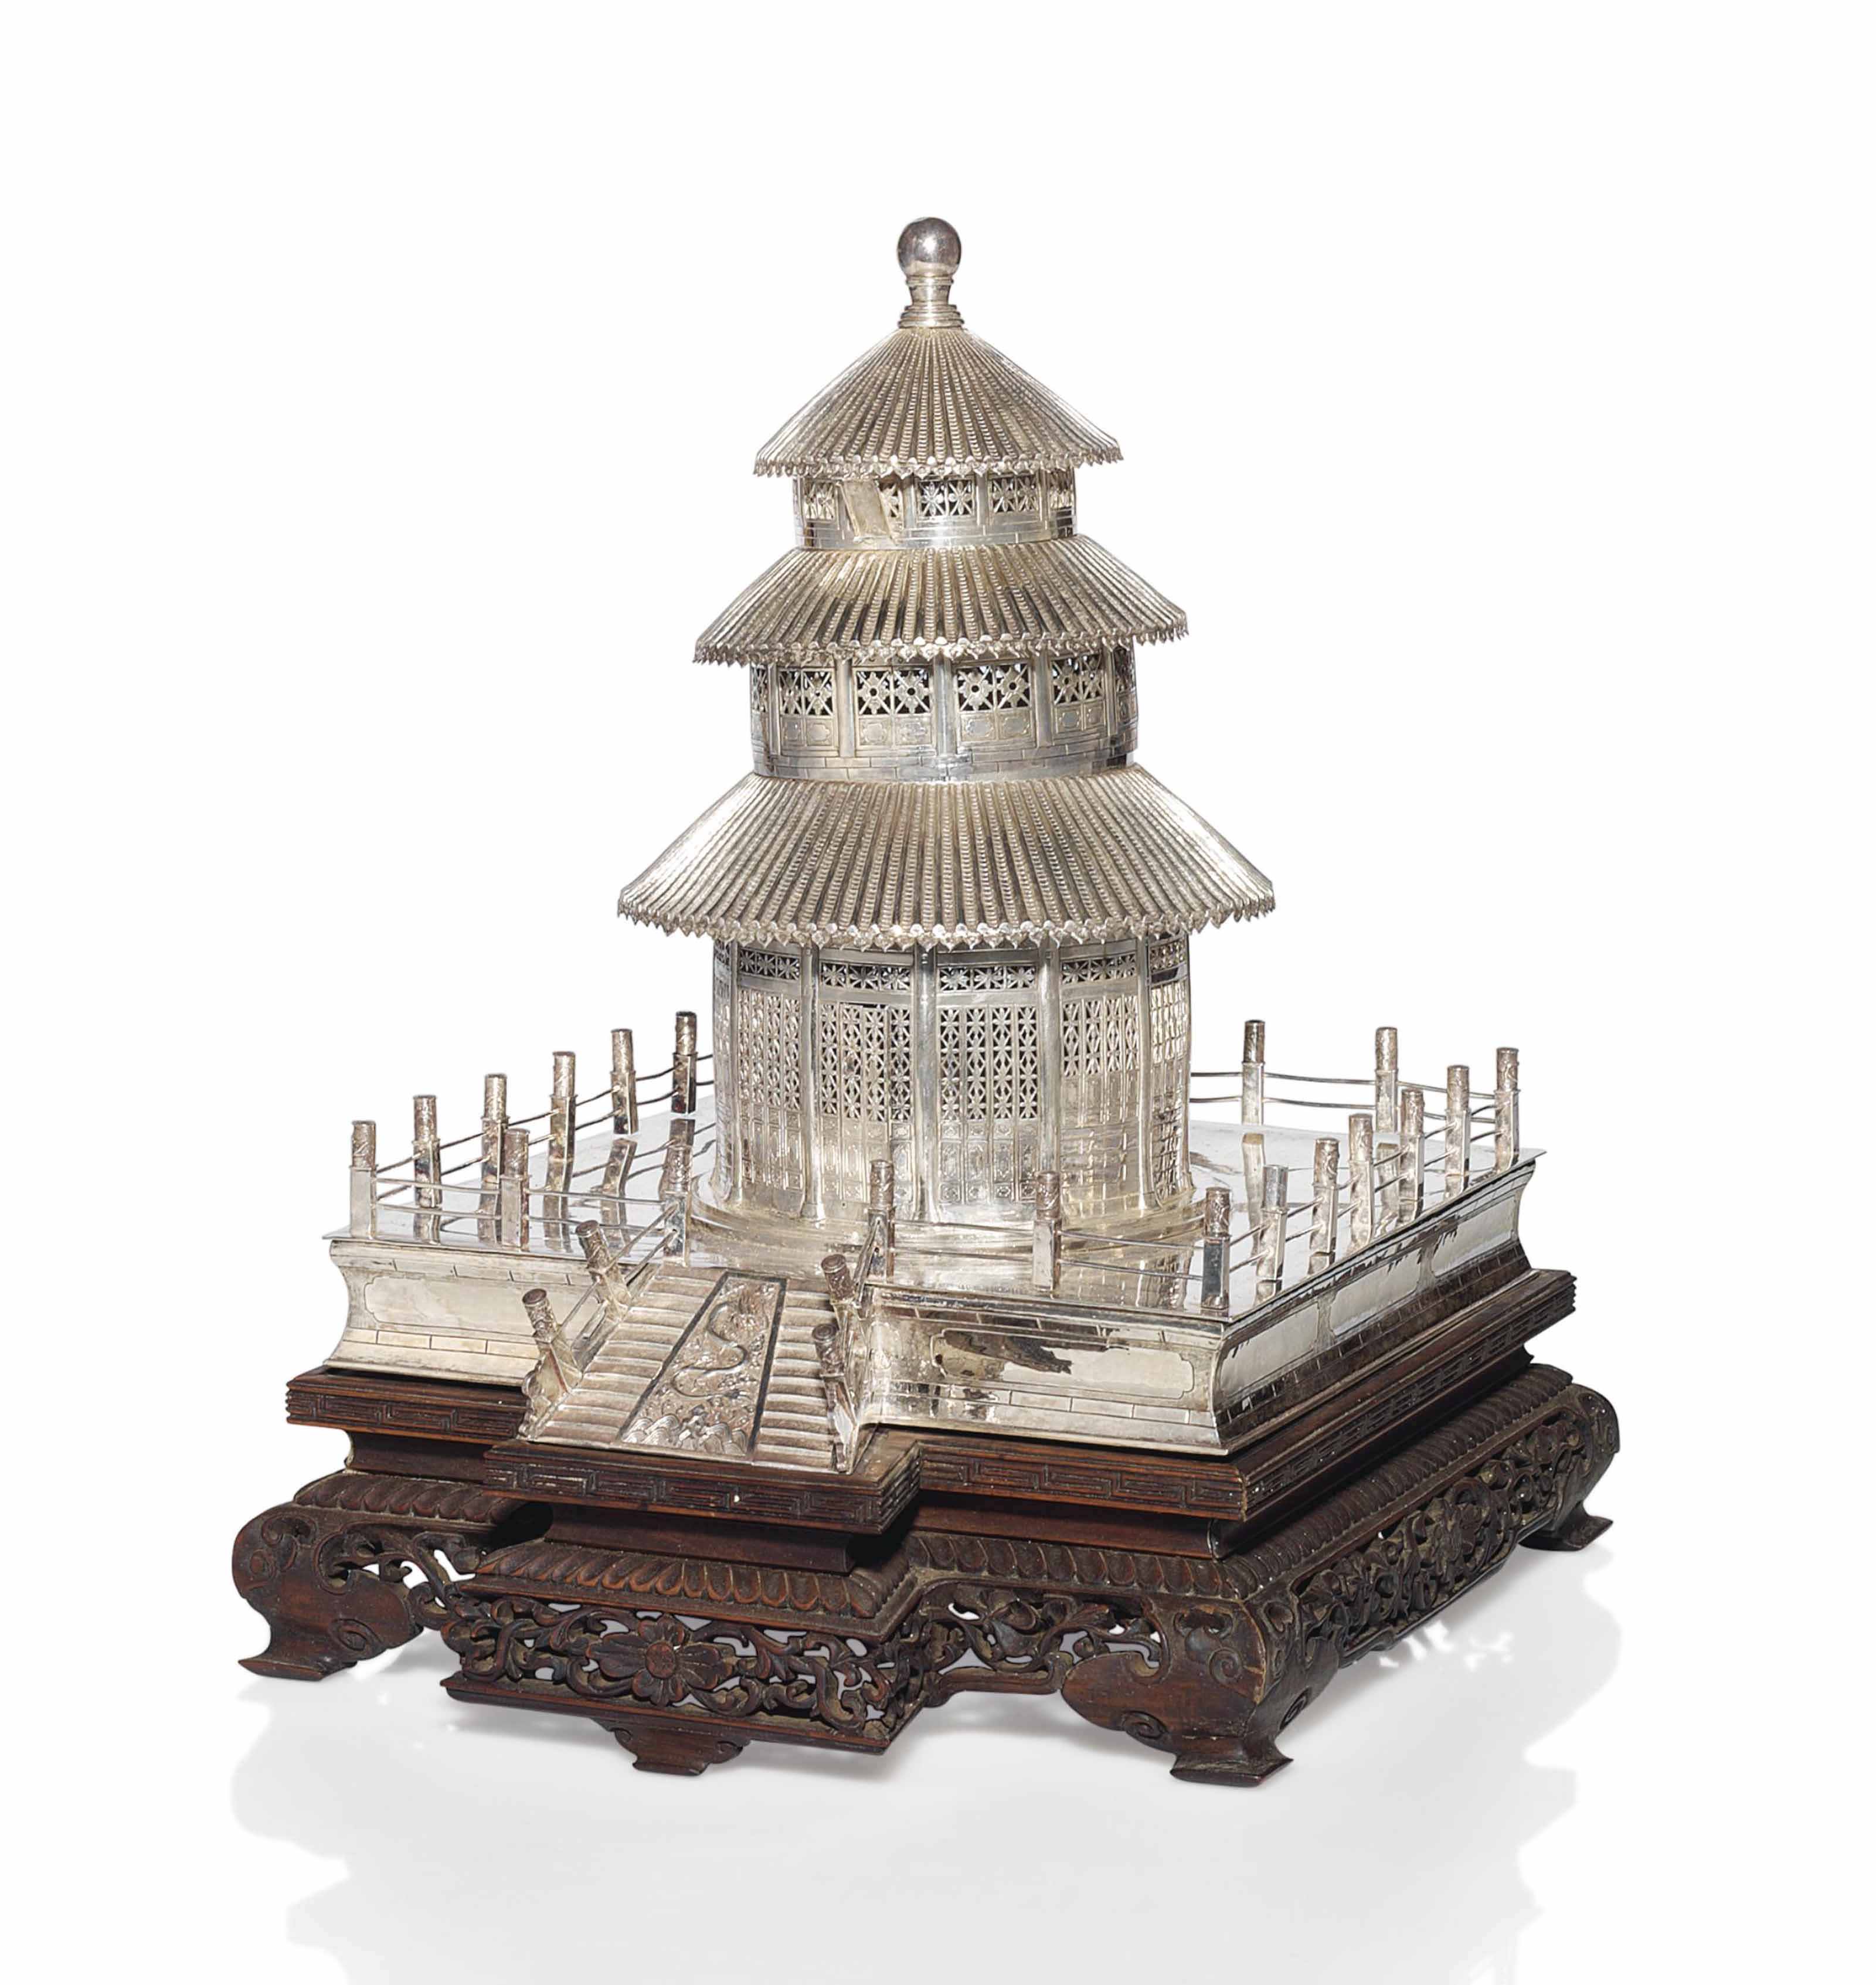 AN UNUSUAL SILVER MODEL OF THE